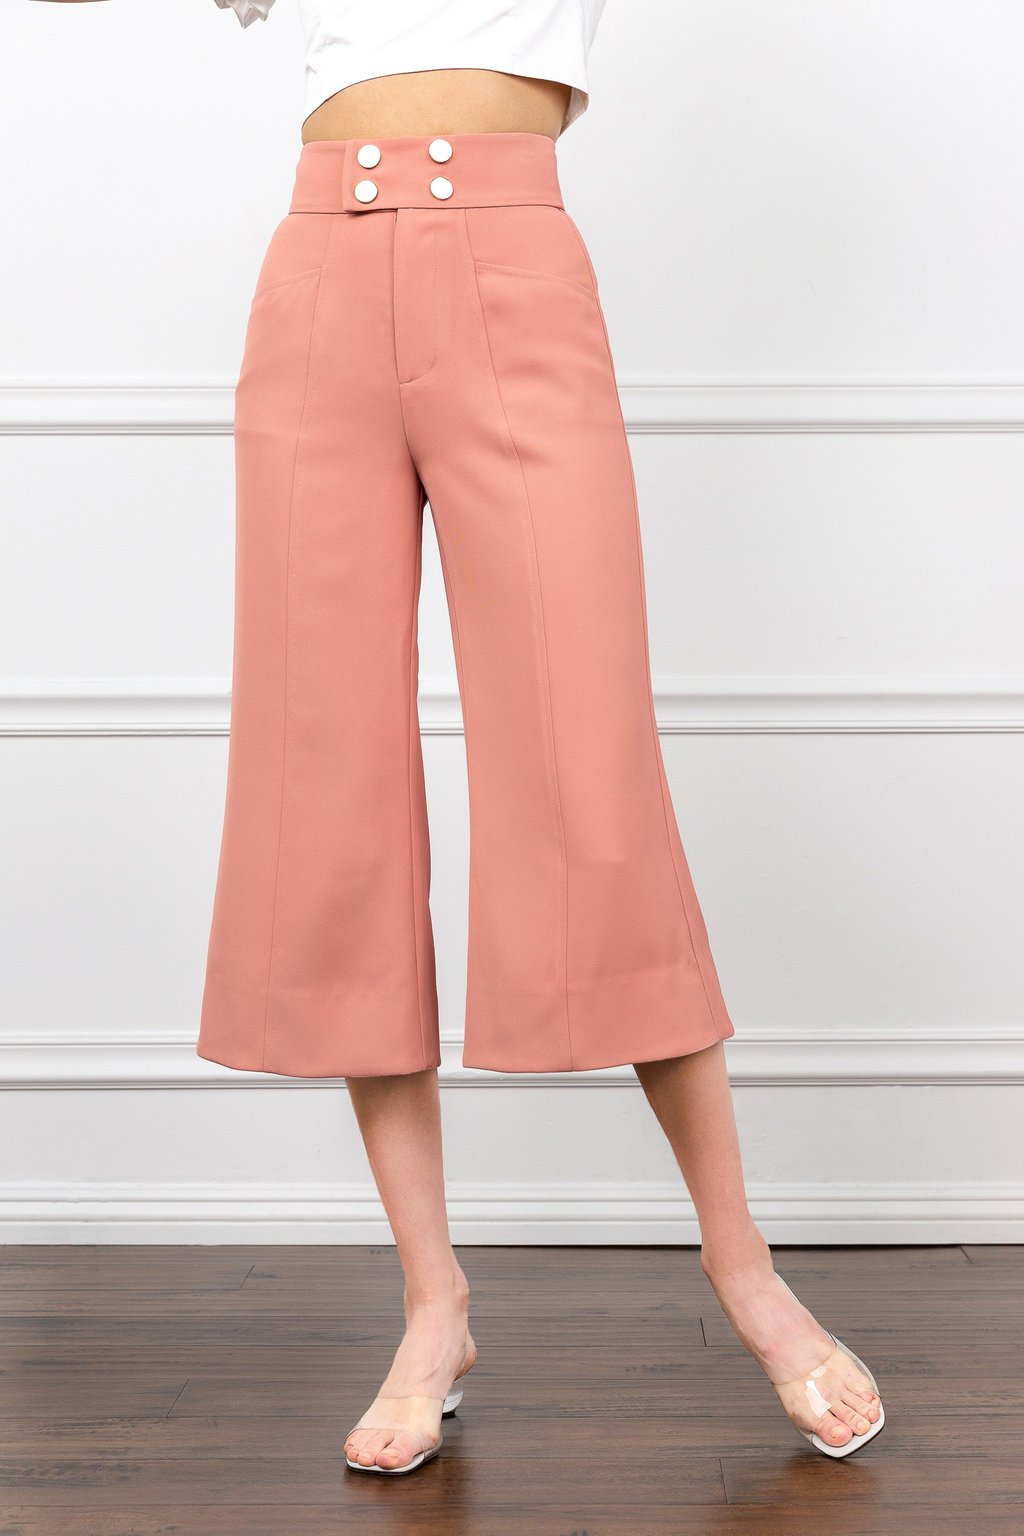 Coral Cropped Pants Wide Leg by J.ING for women's fashion